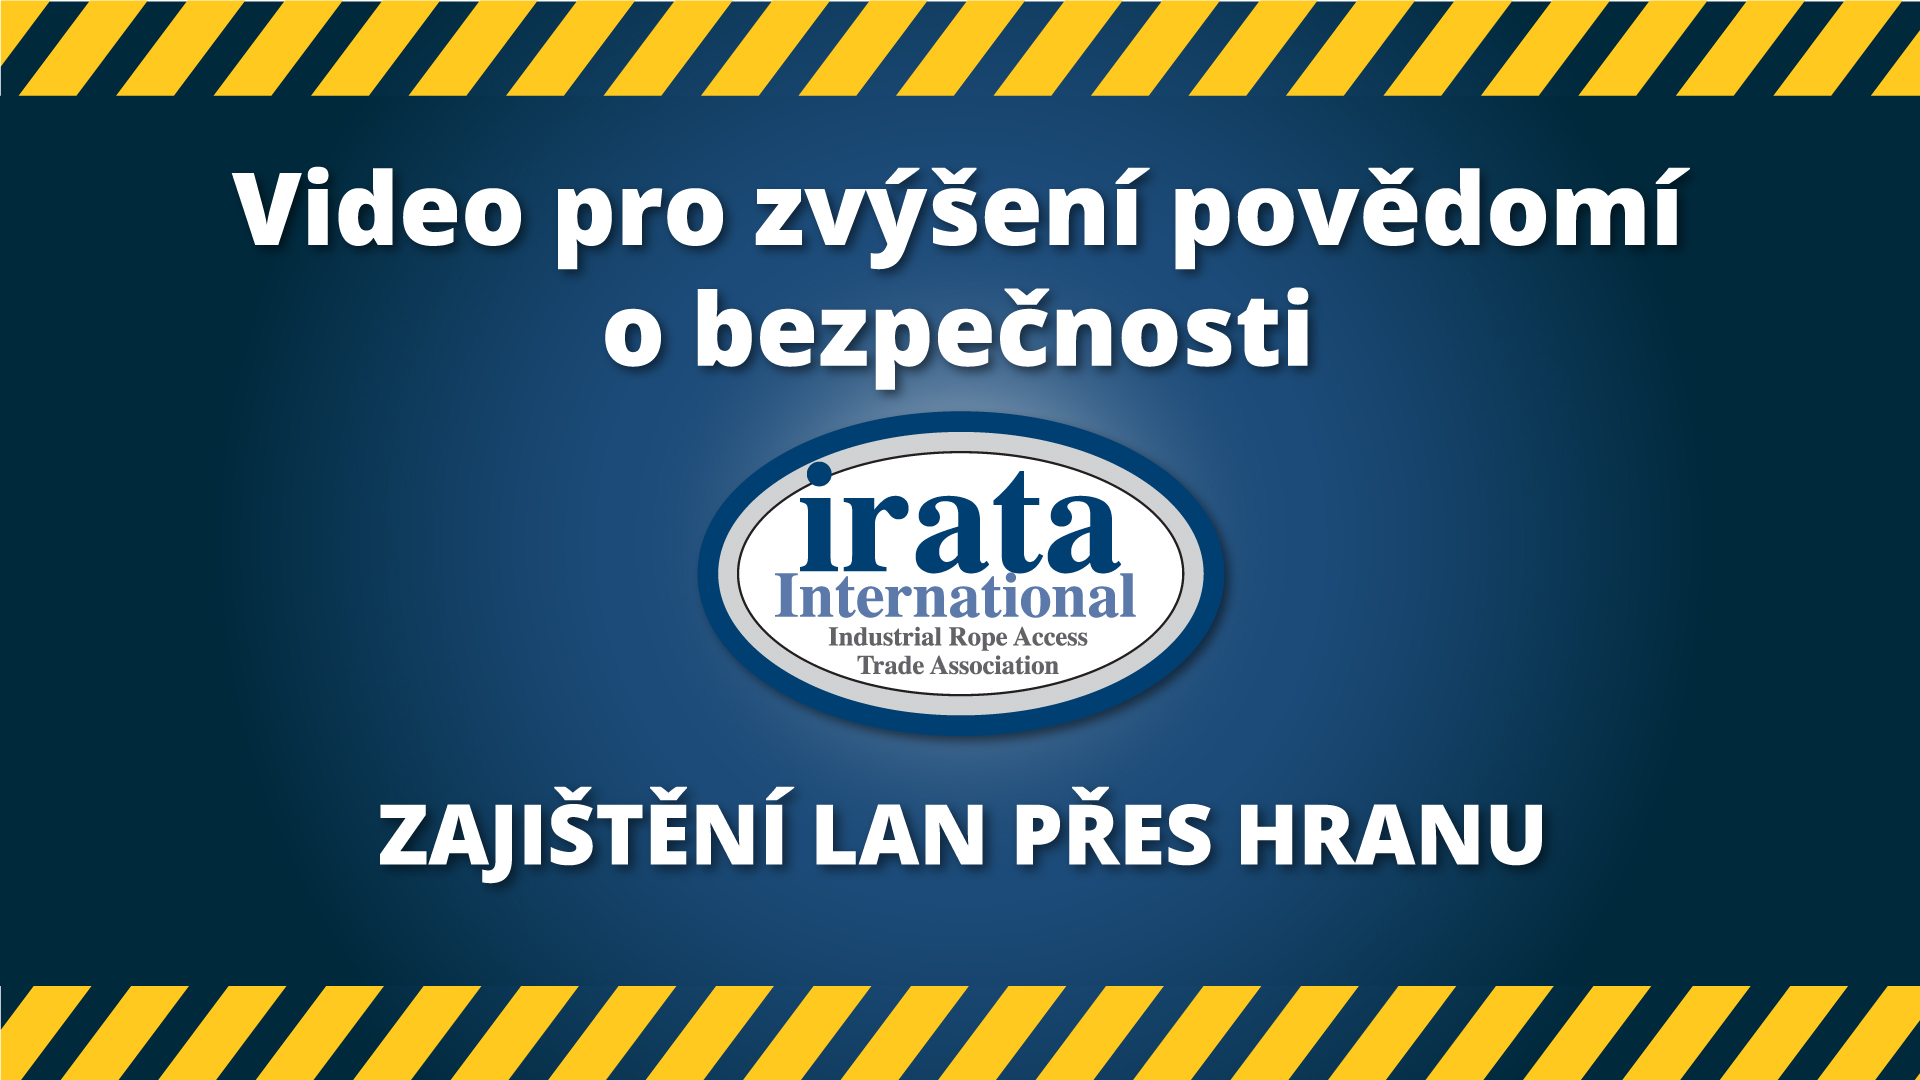 Thank you | IRATA International